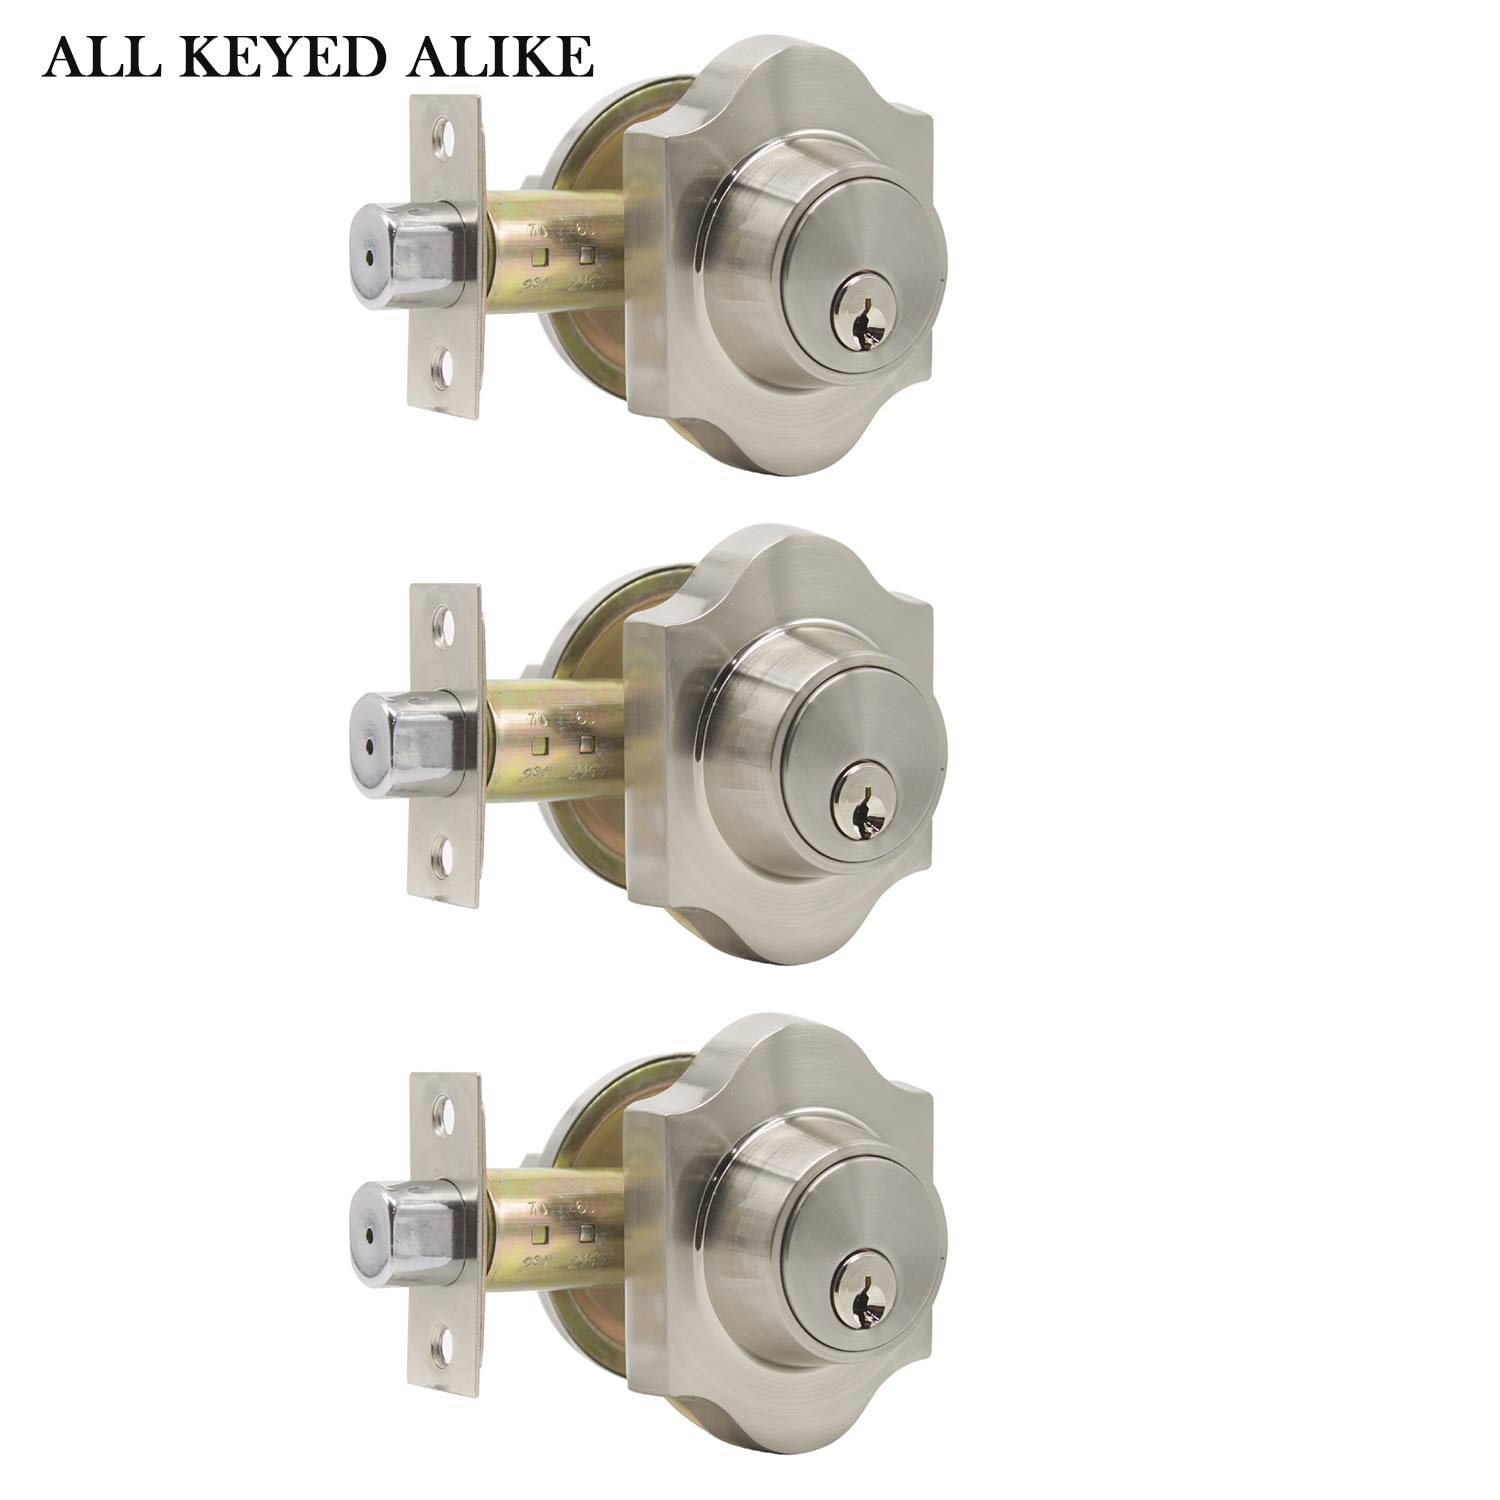 3 Pack Interior Bedroom/Bathroom Single Cylinder Deadbolt One Keyway Keyed Alike Same Key Safety Bolt Door Lock Lockset in Satin Nickel-Single Deadbolt